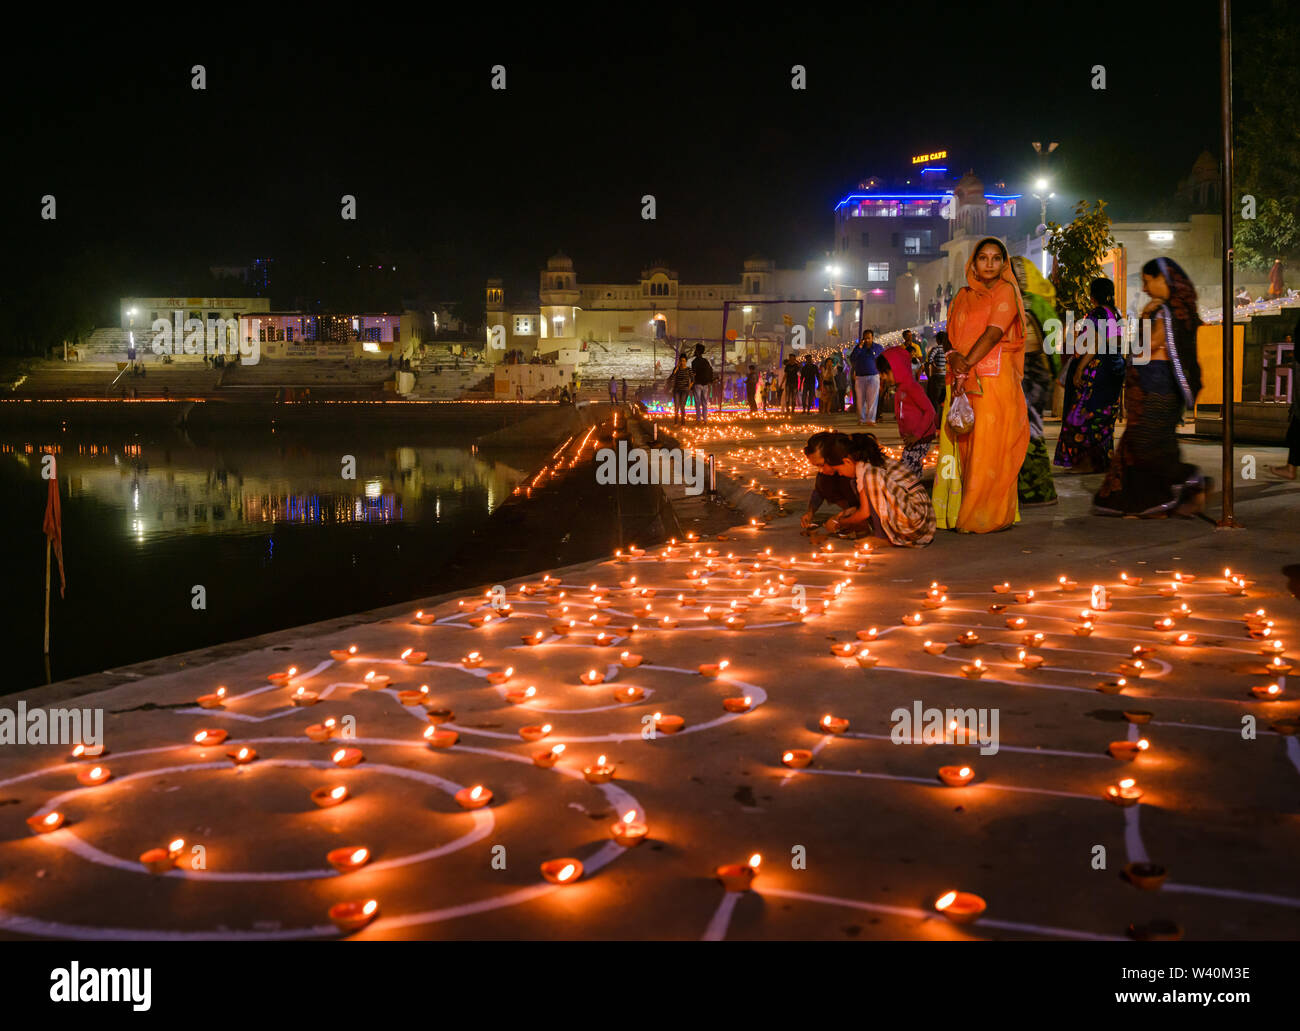 PUSHKAR, INDIA - CIRCA NOVEMBER 2018: People in the Pushkar Ghats during the opening ceremonies of the Camel Fair. It is one of the world's largest ca - Stock Image